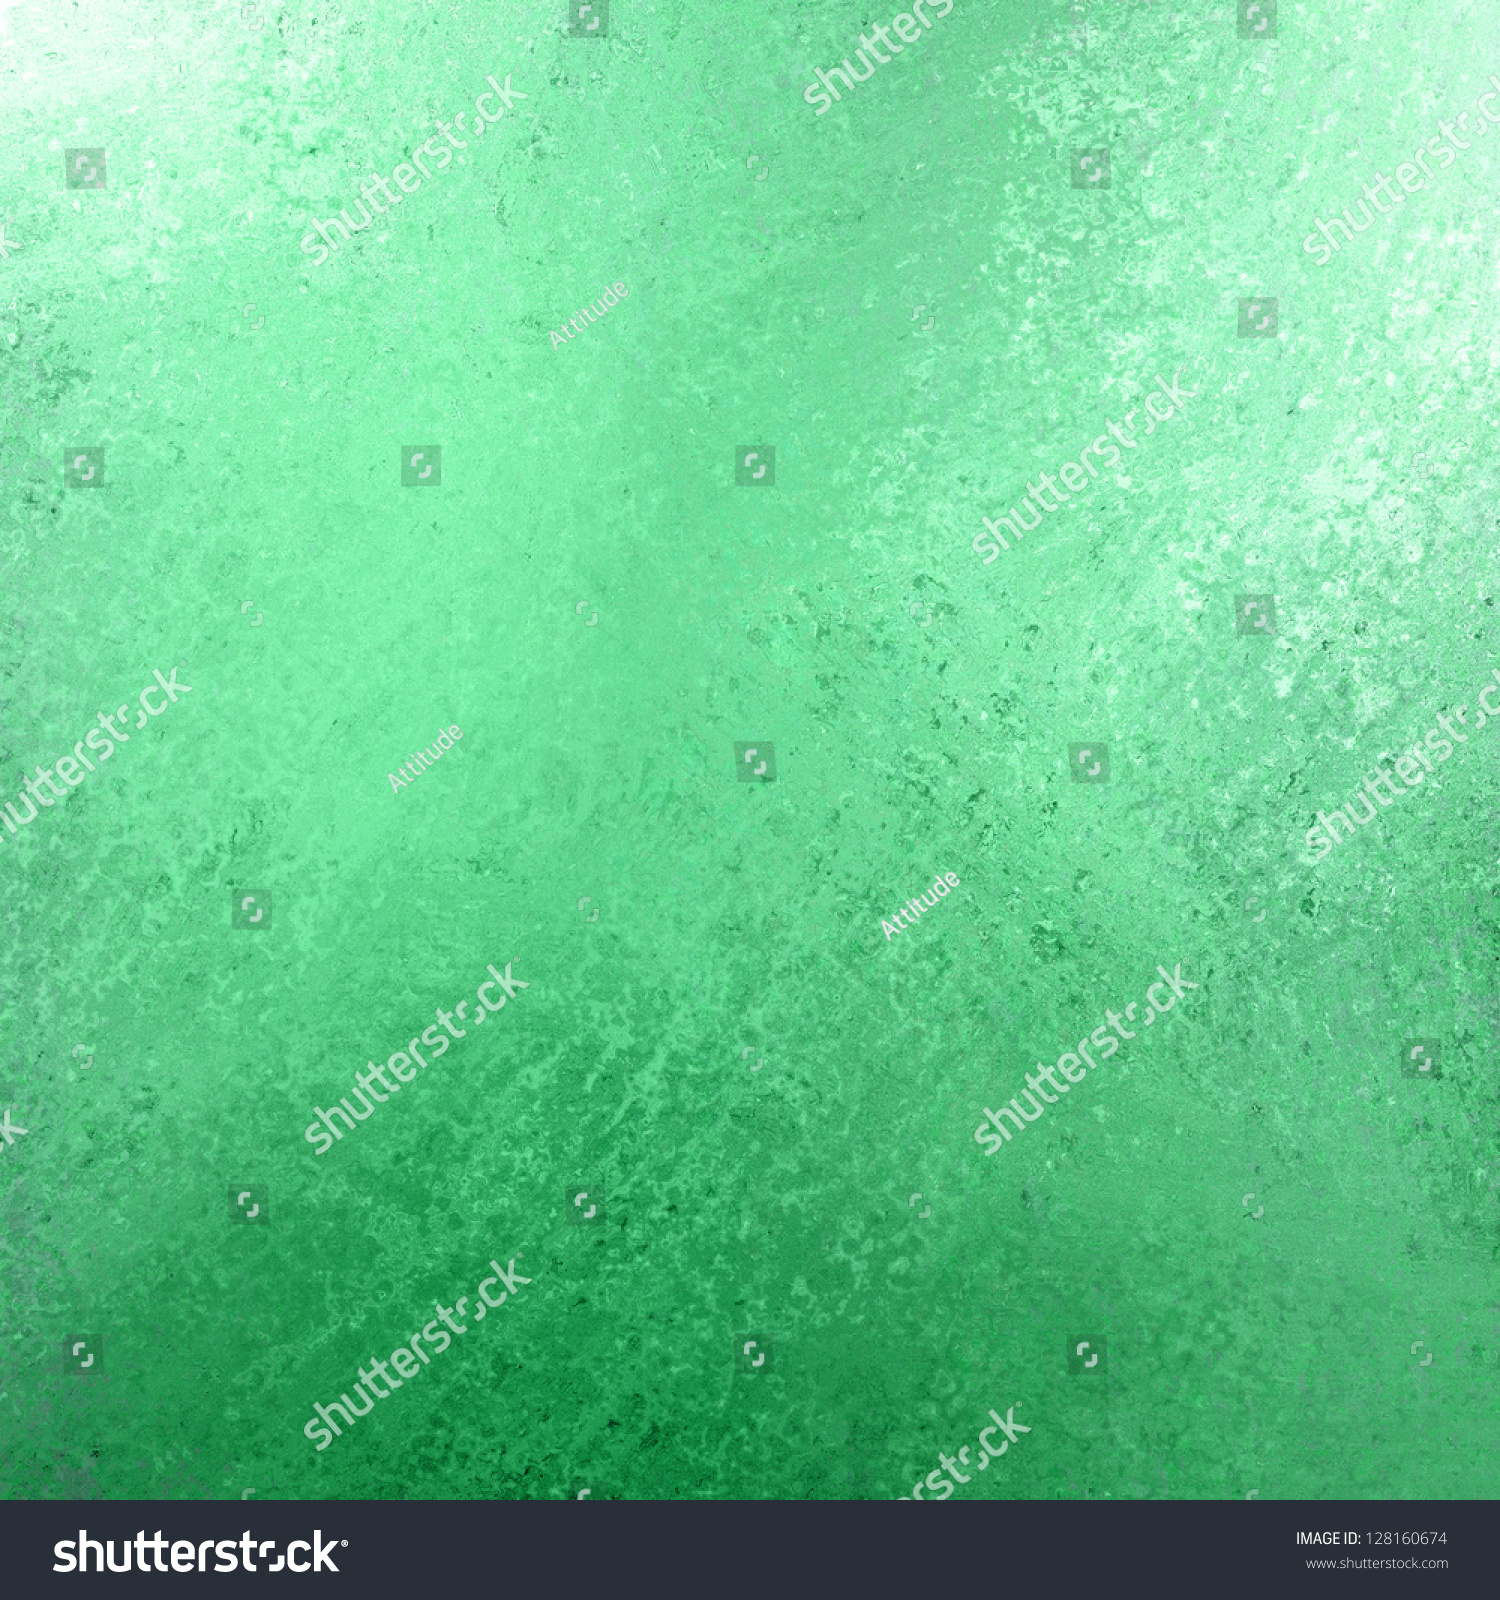 Abstract green background mint color vintage stock Light pastel green paint